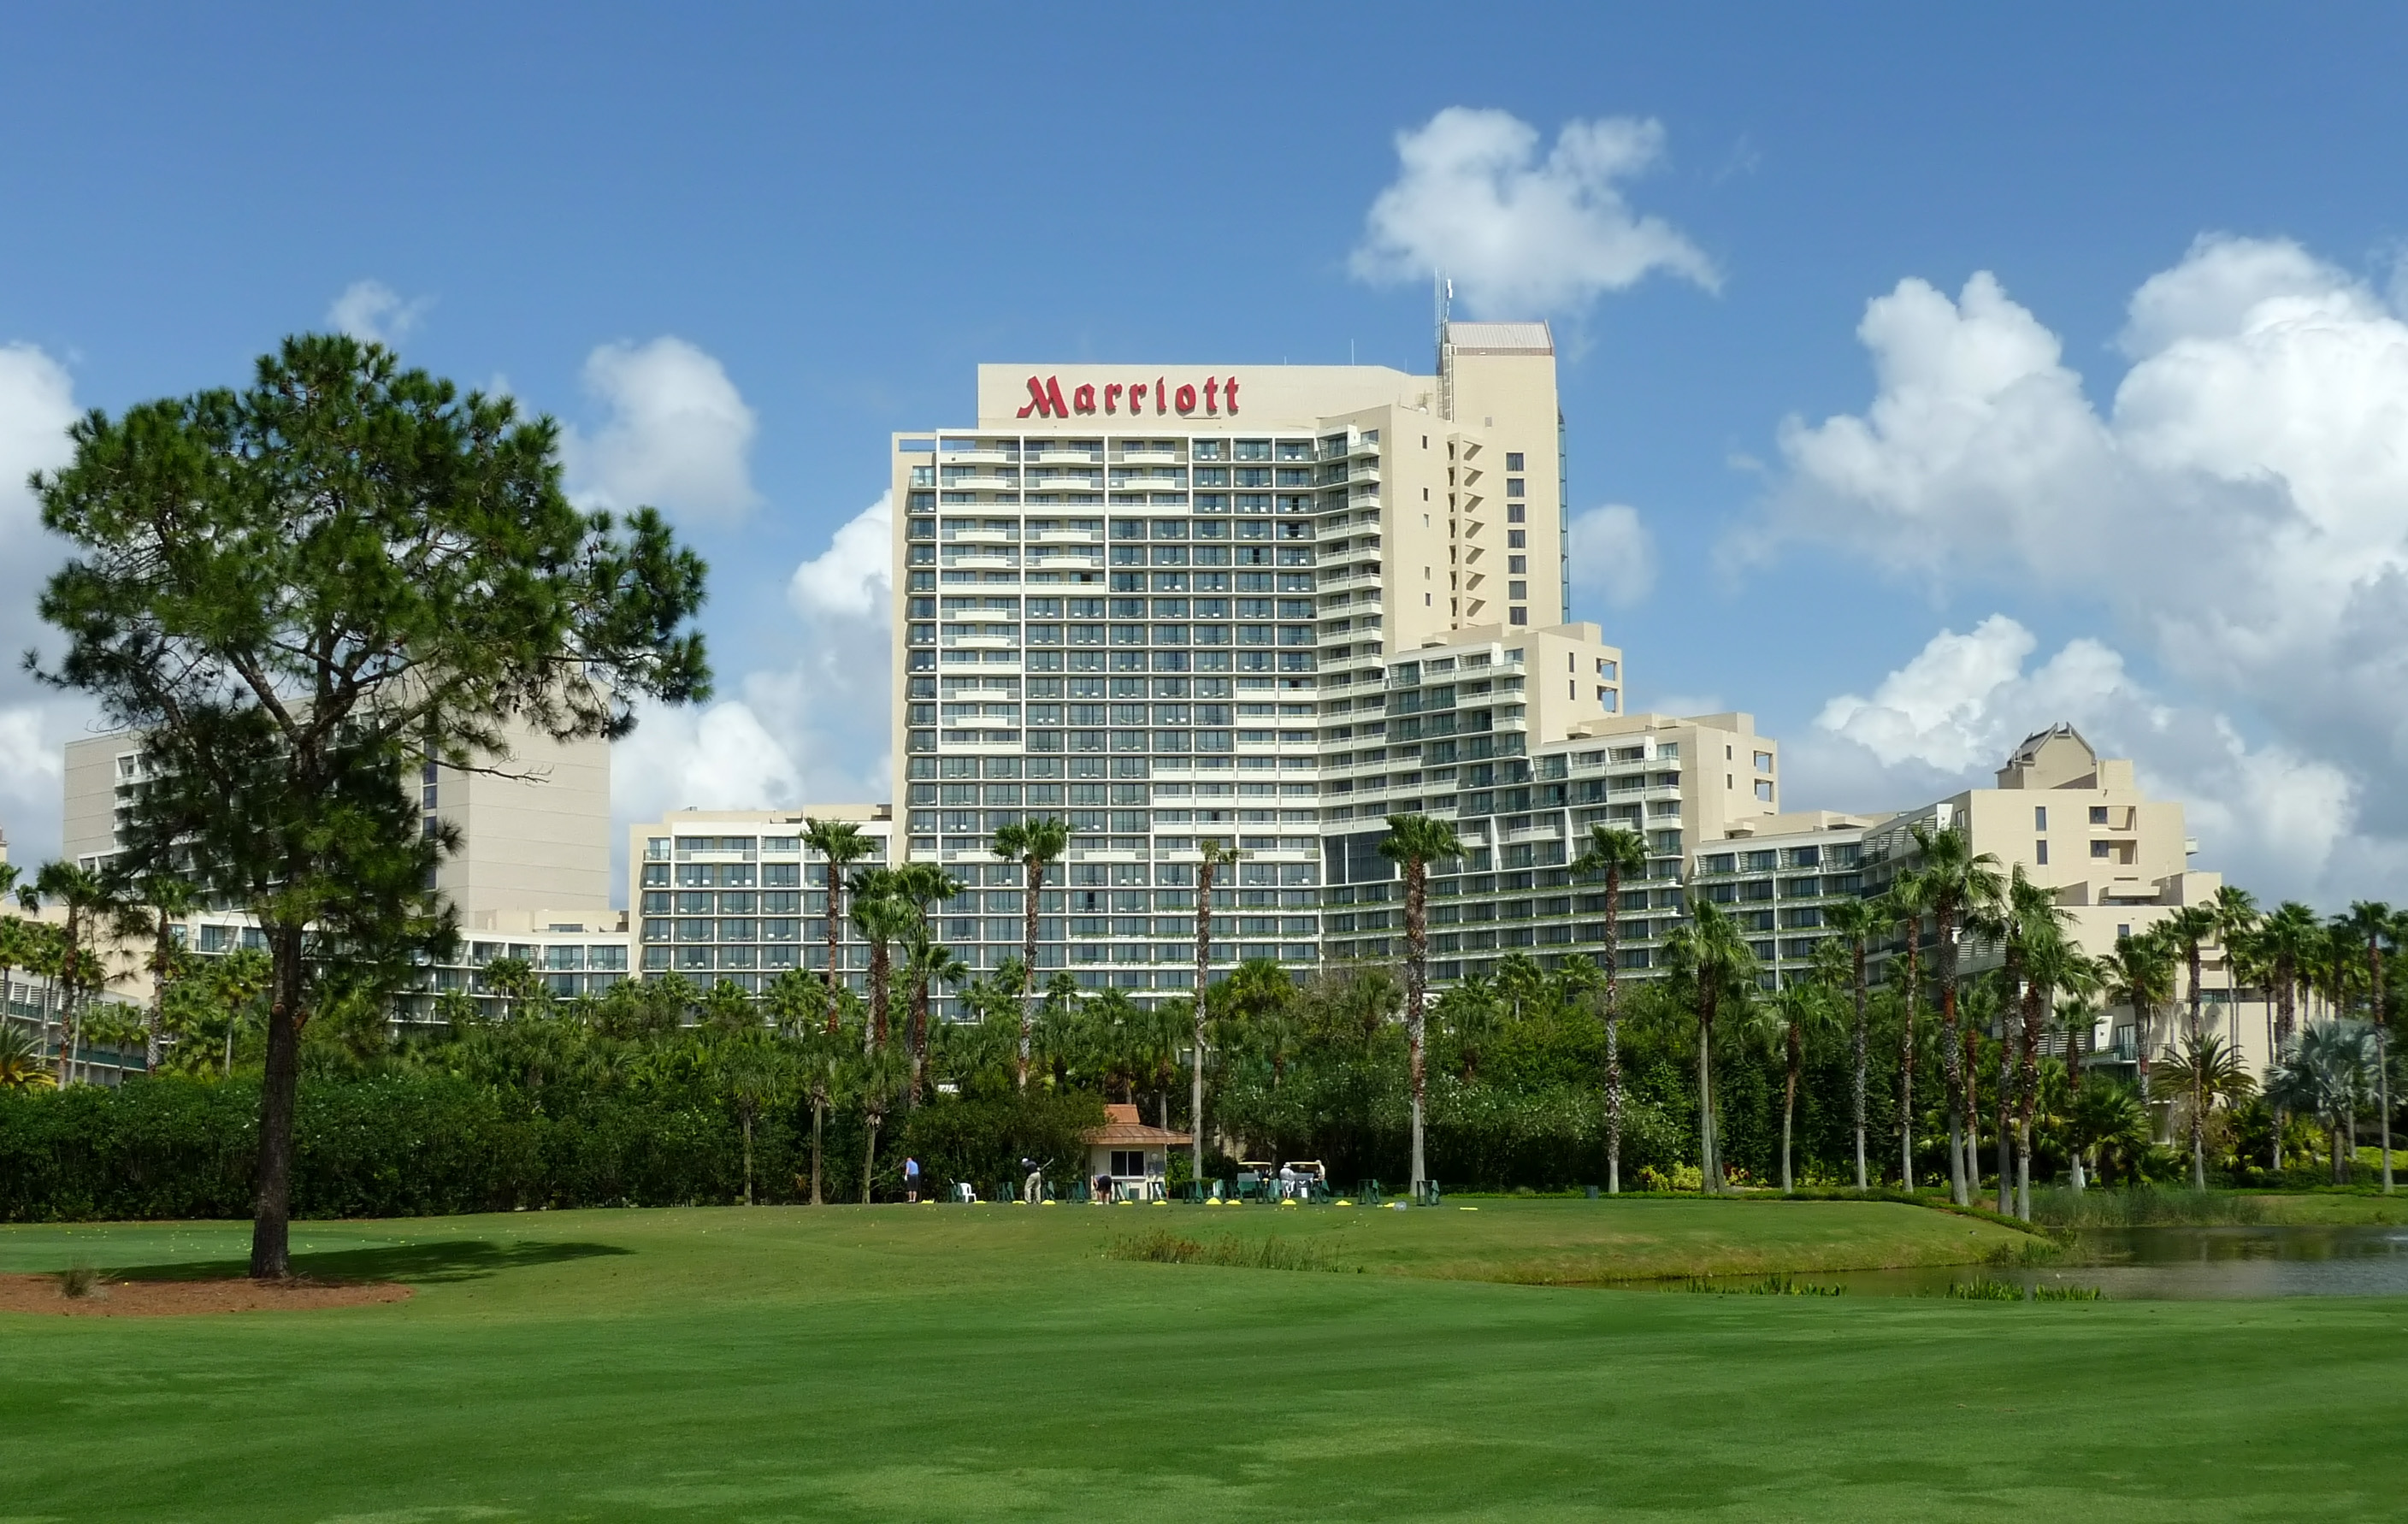 Photo 6 Marriott Orlando World Center